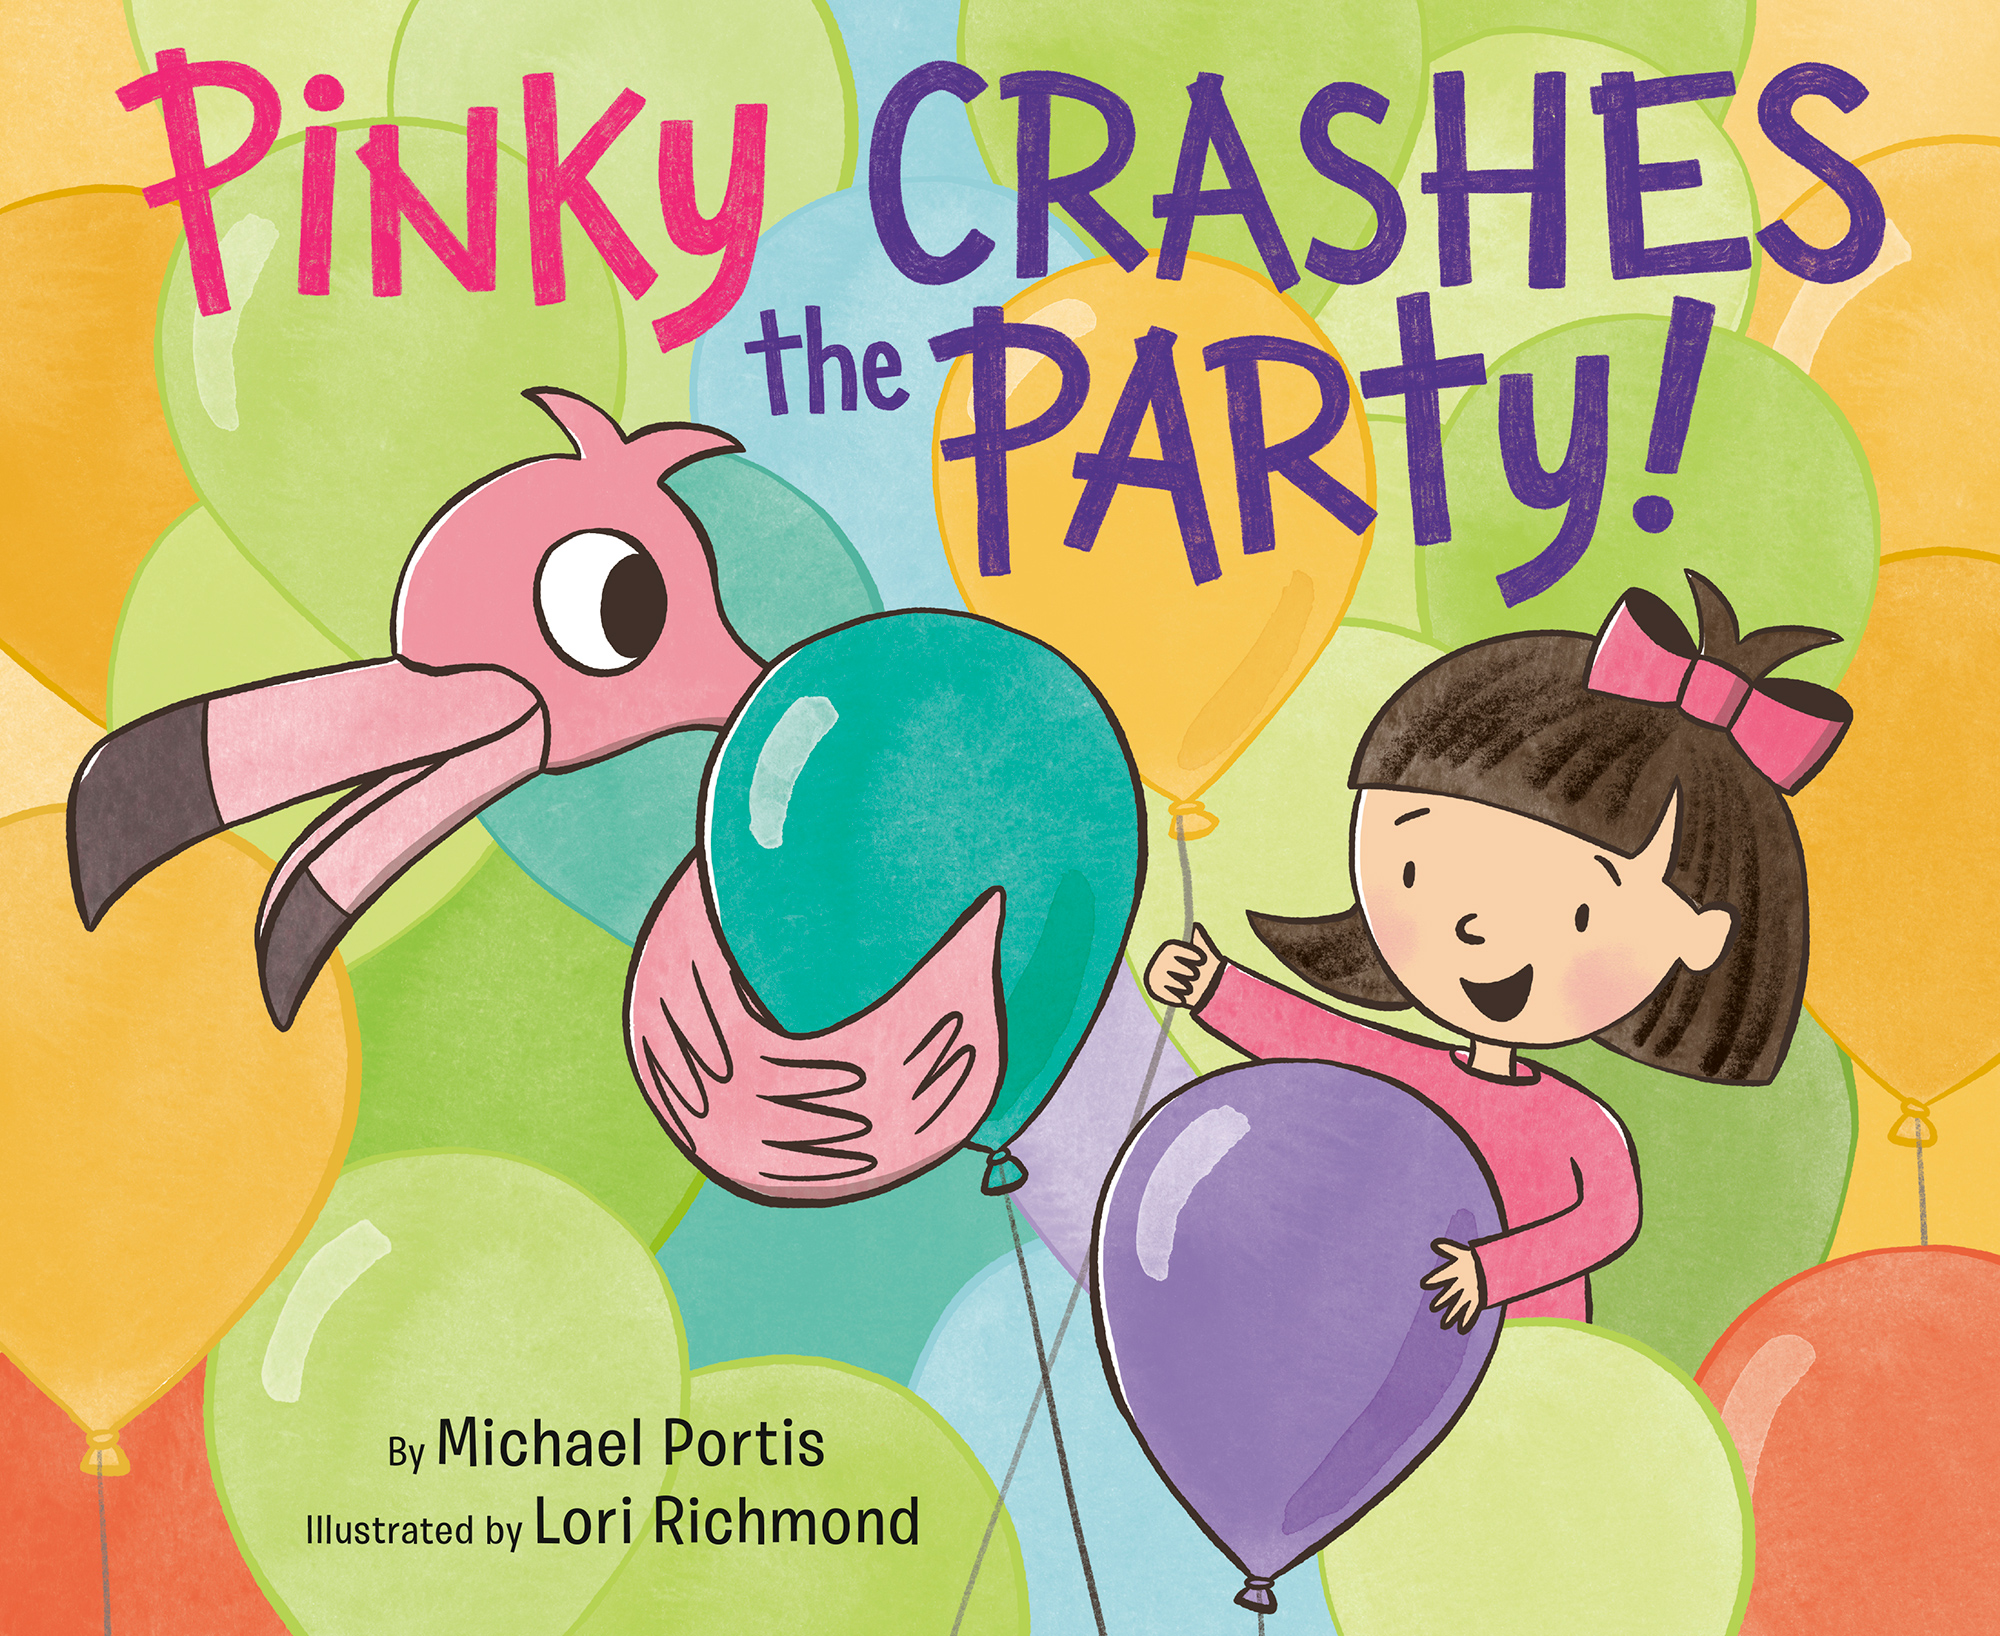 Pinky-Crashes-The-Party-2000wide.jpg